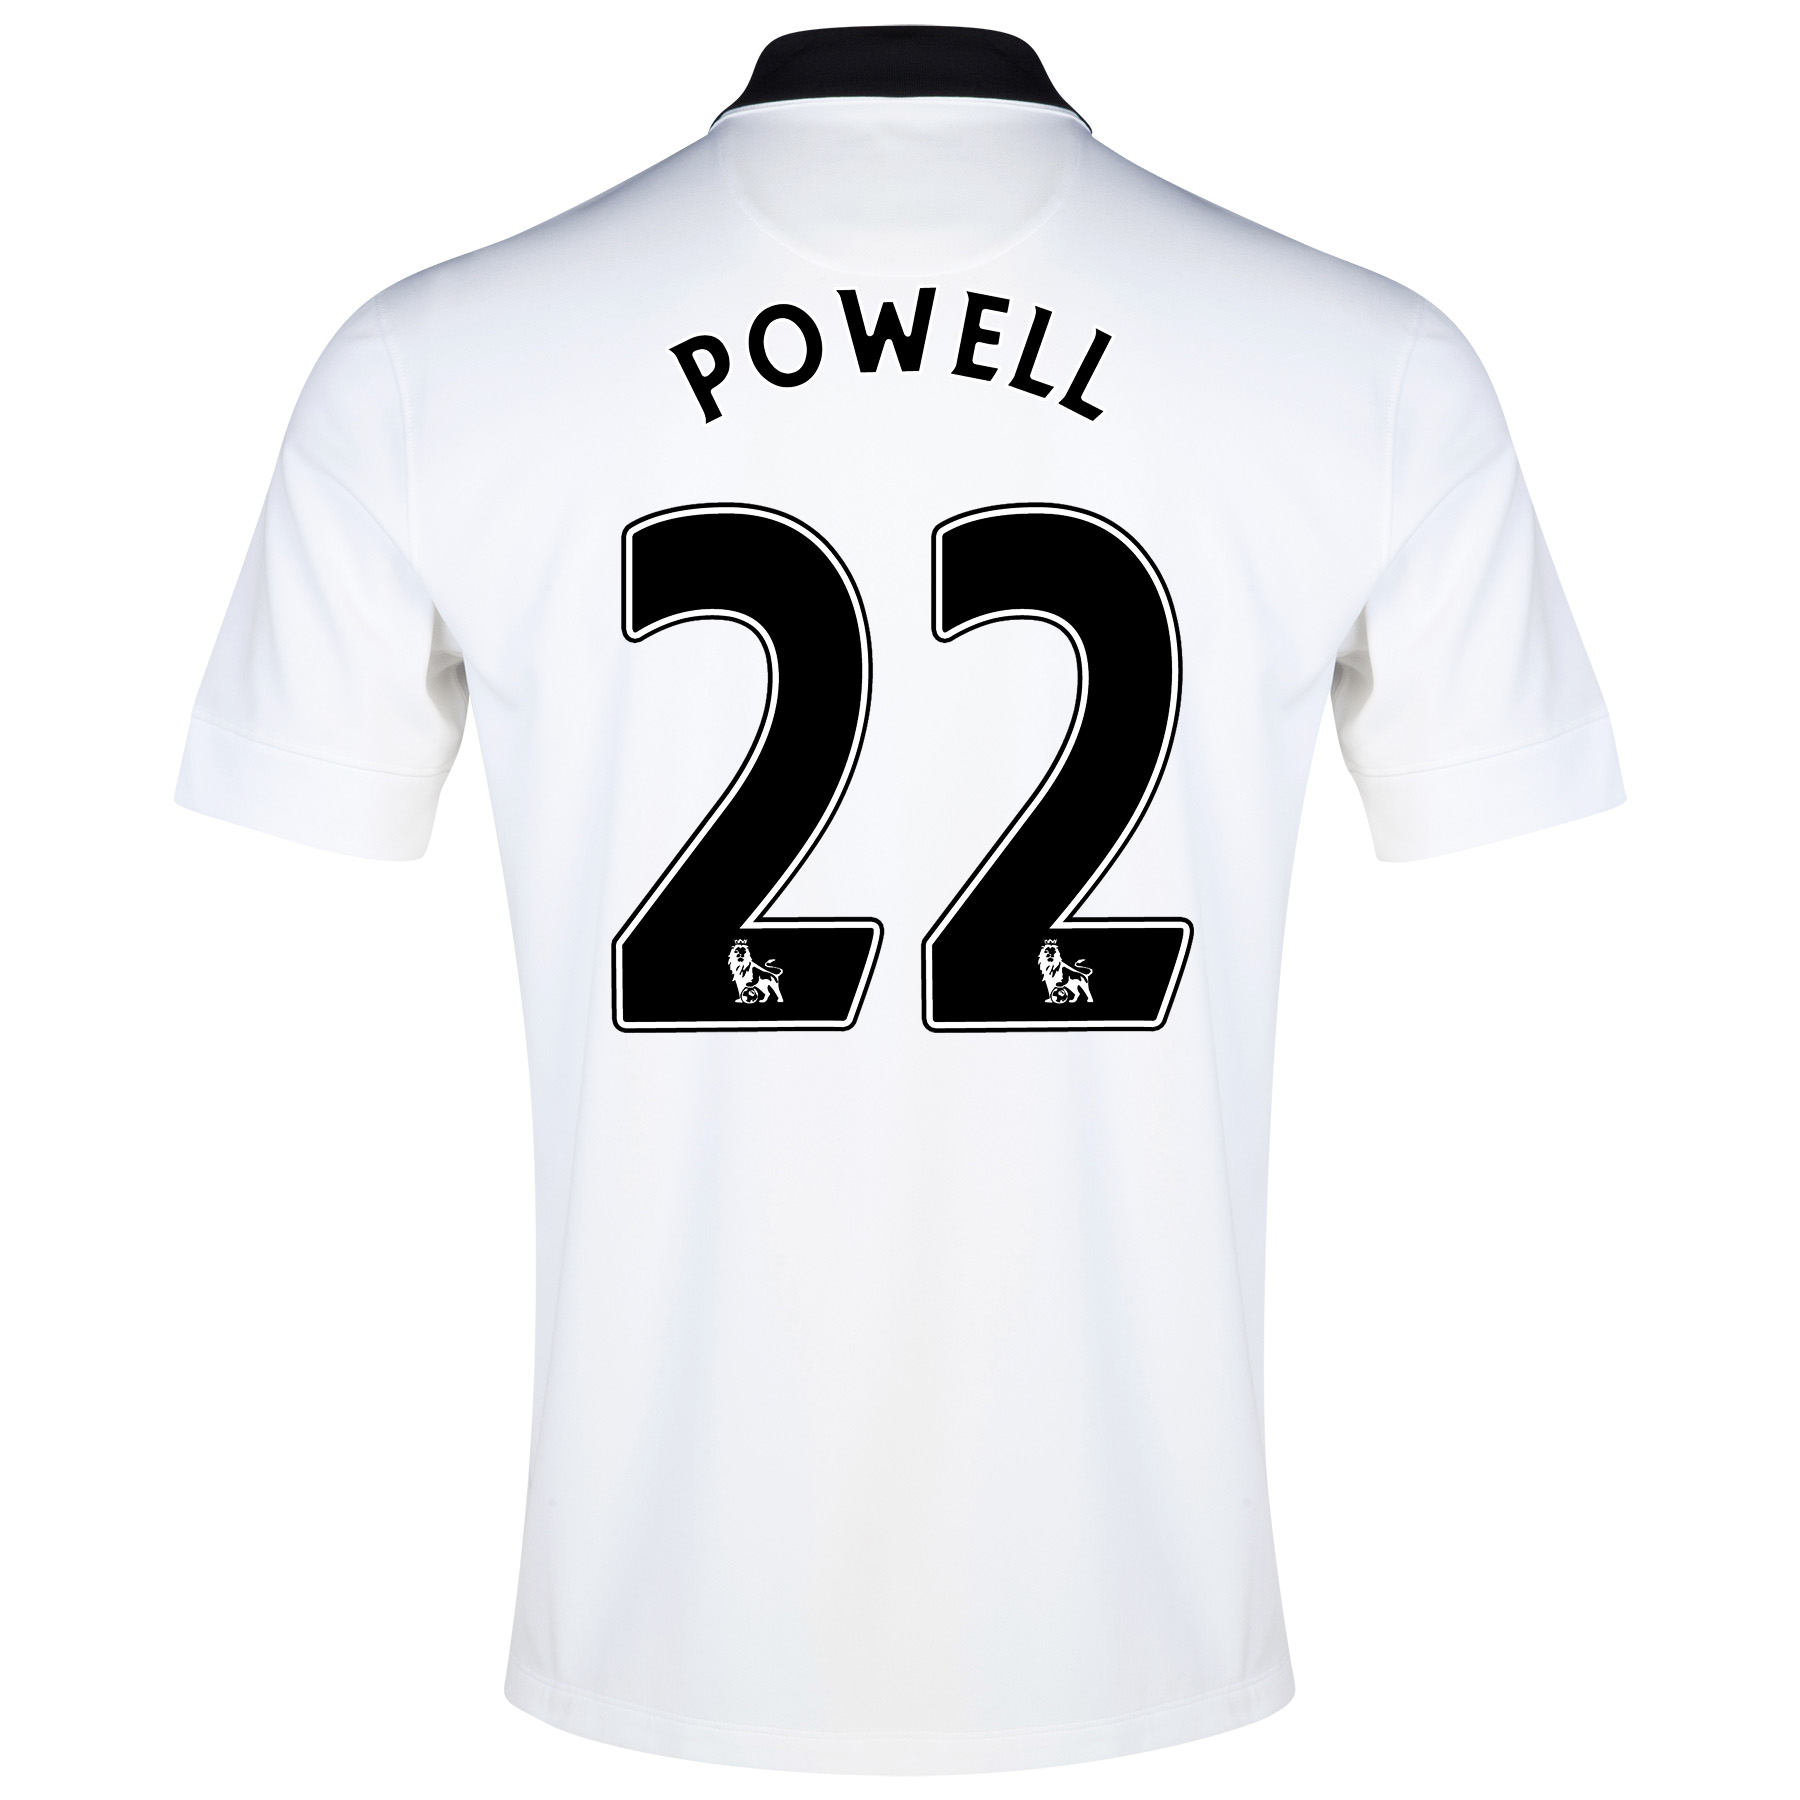 Manchester United Away Shirt 2014/15 White with Powell 22 printing